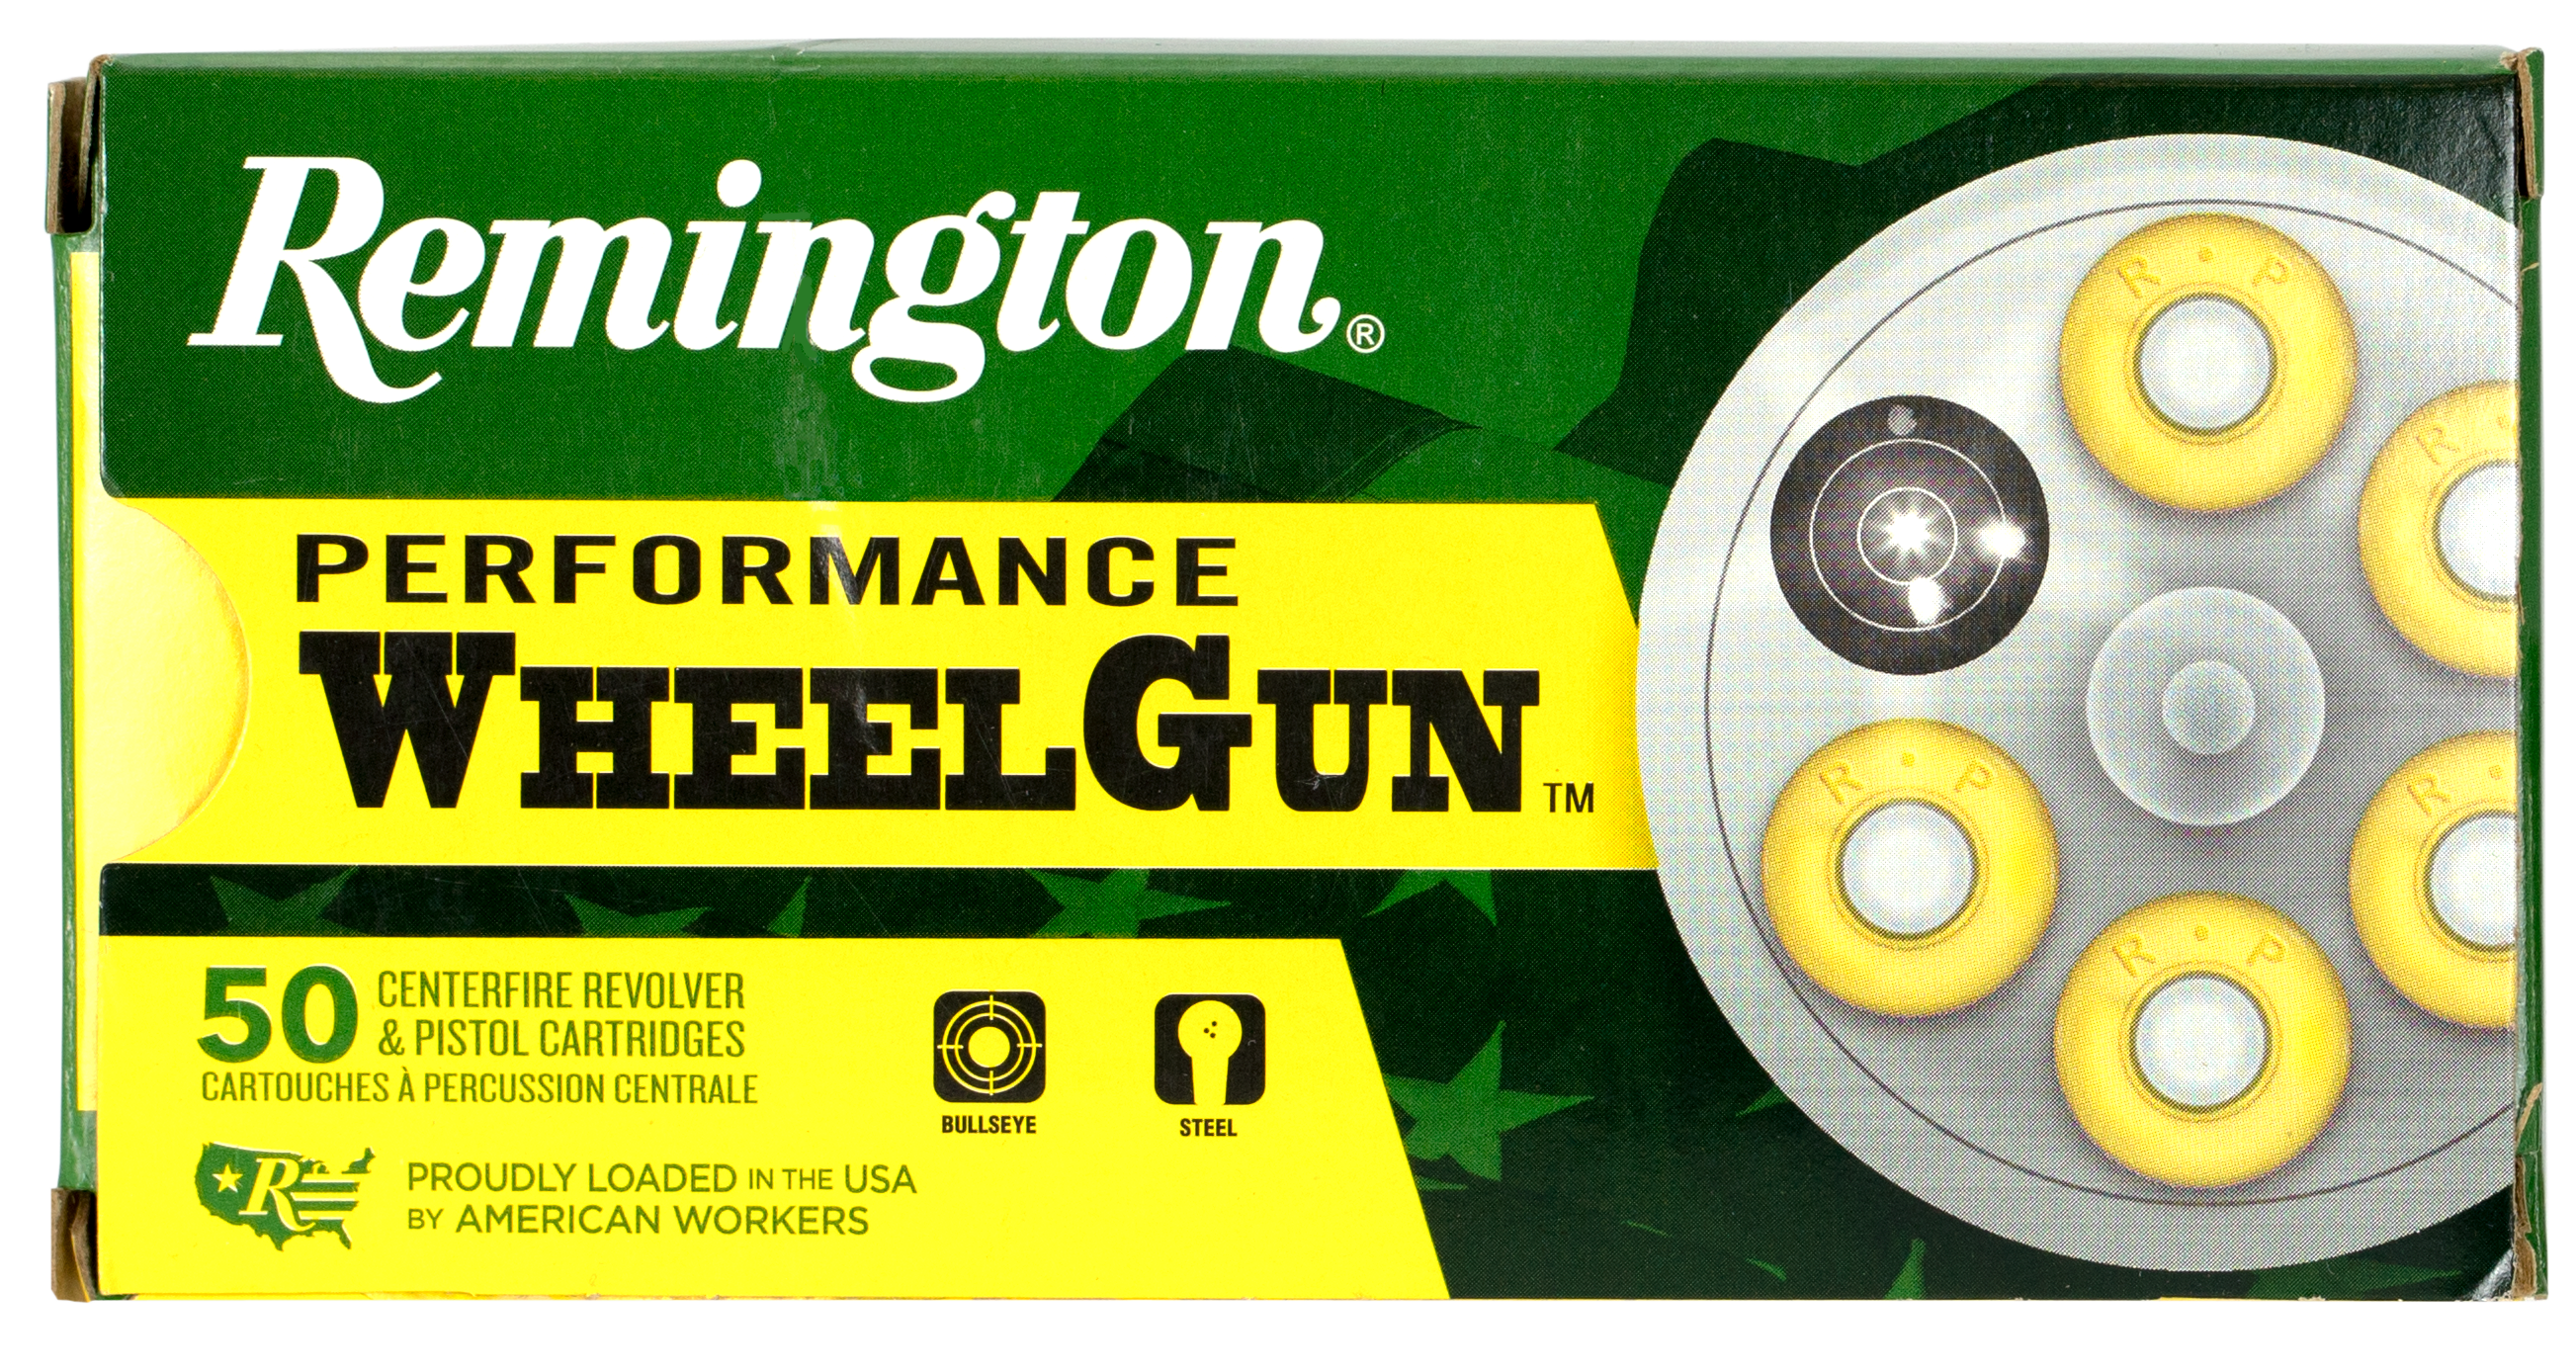 Remington Performance WheelGun Ammunition 38 Special 148GR Targetmaster Lead WC Match Per 50